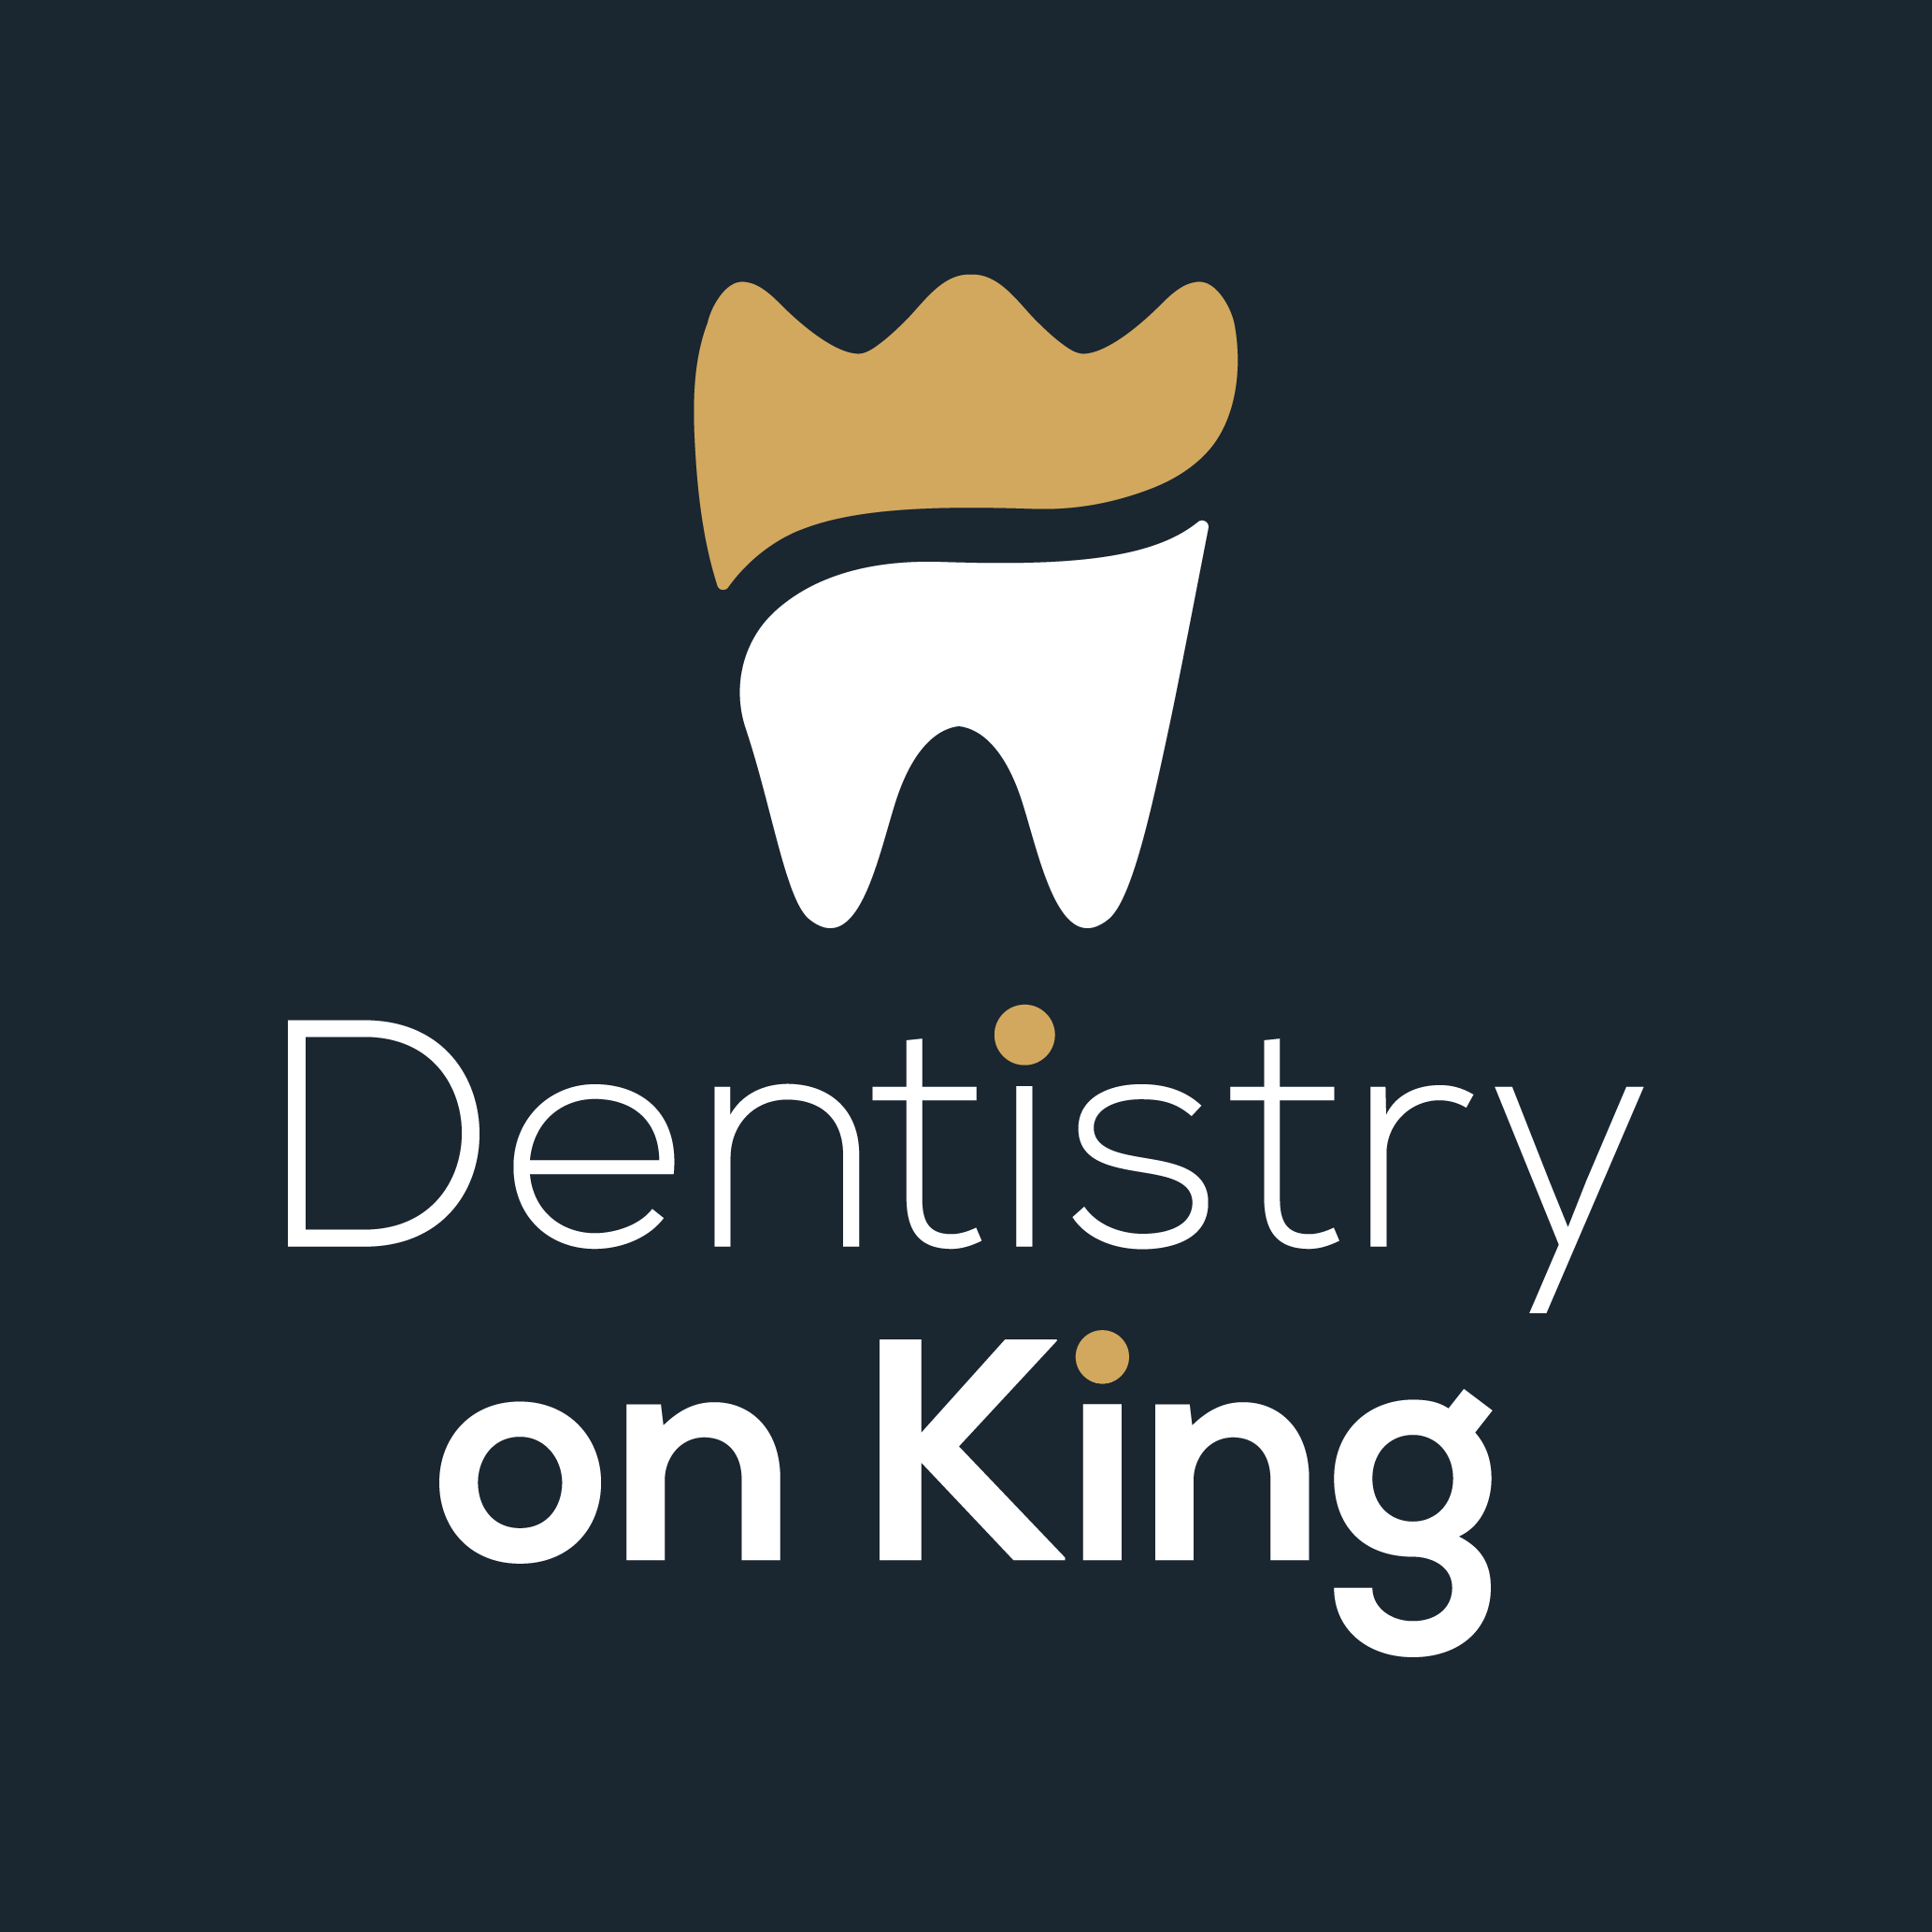 desntisty on king mobile logo